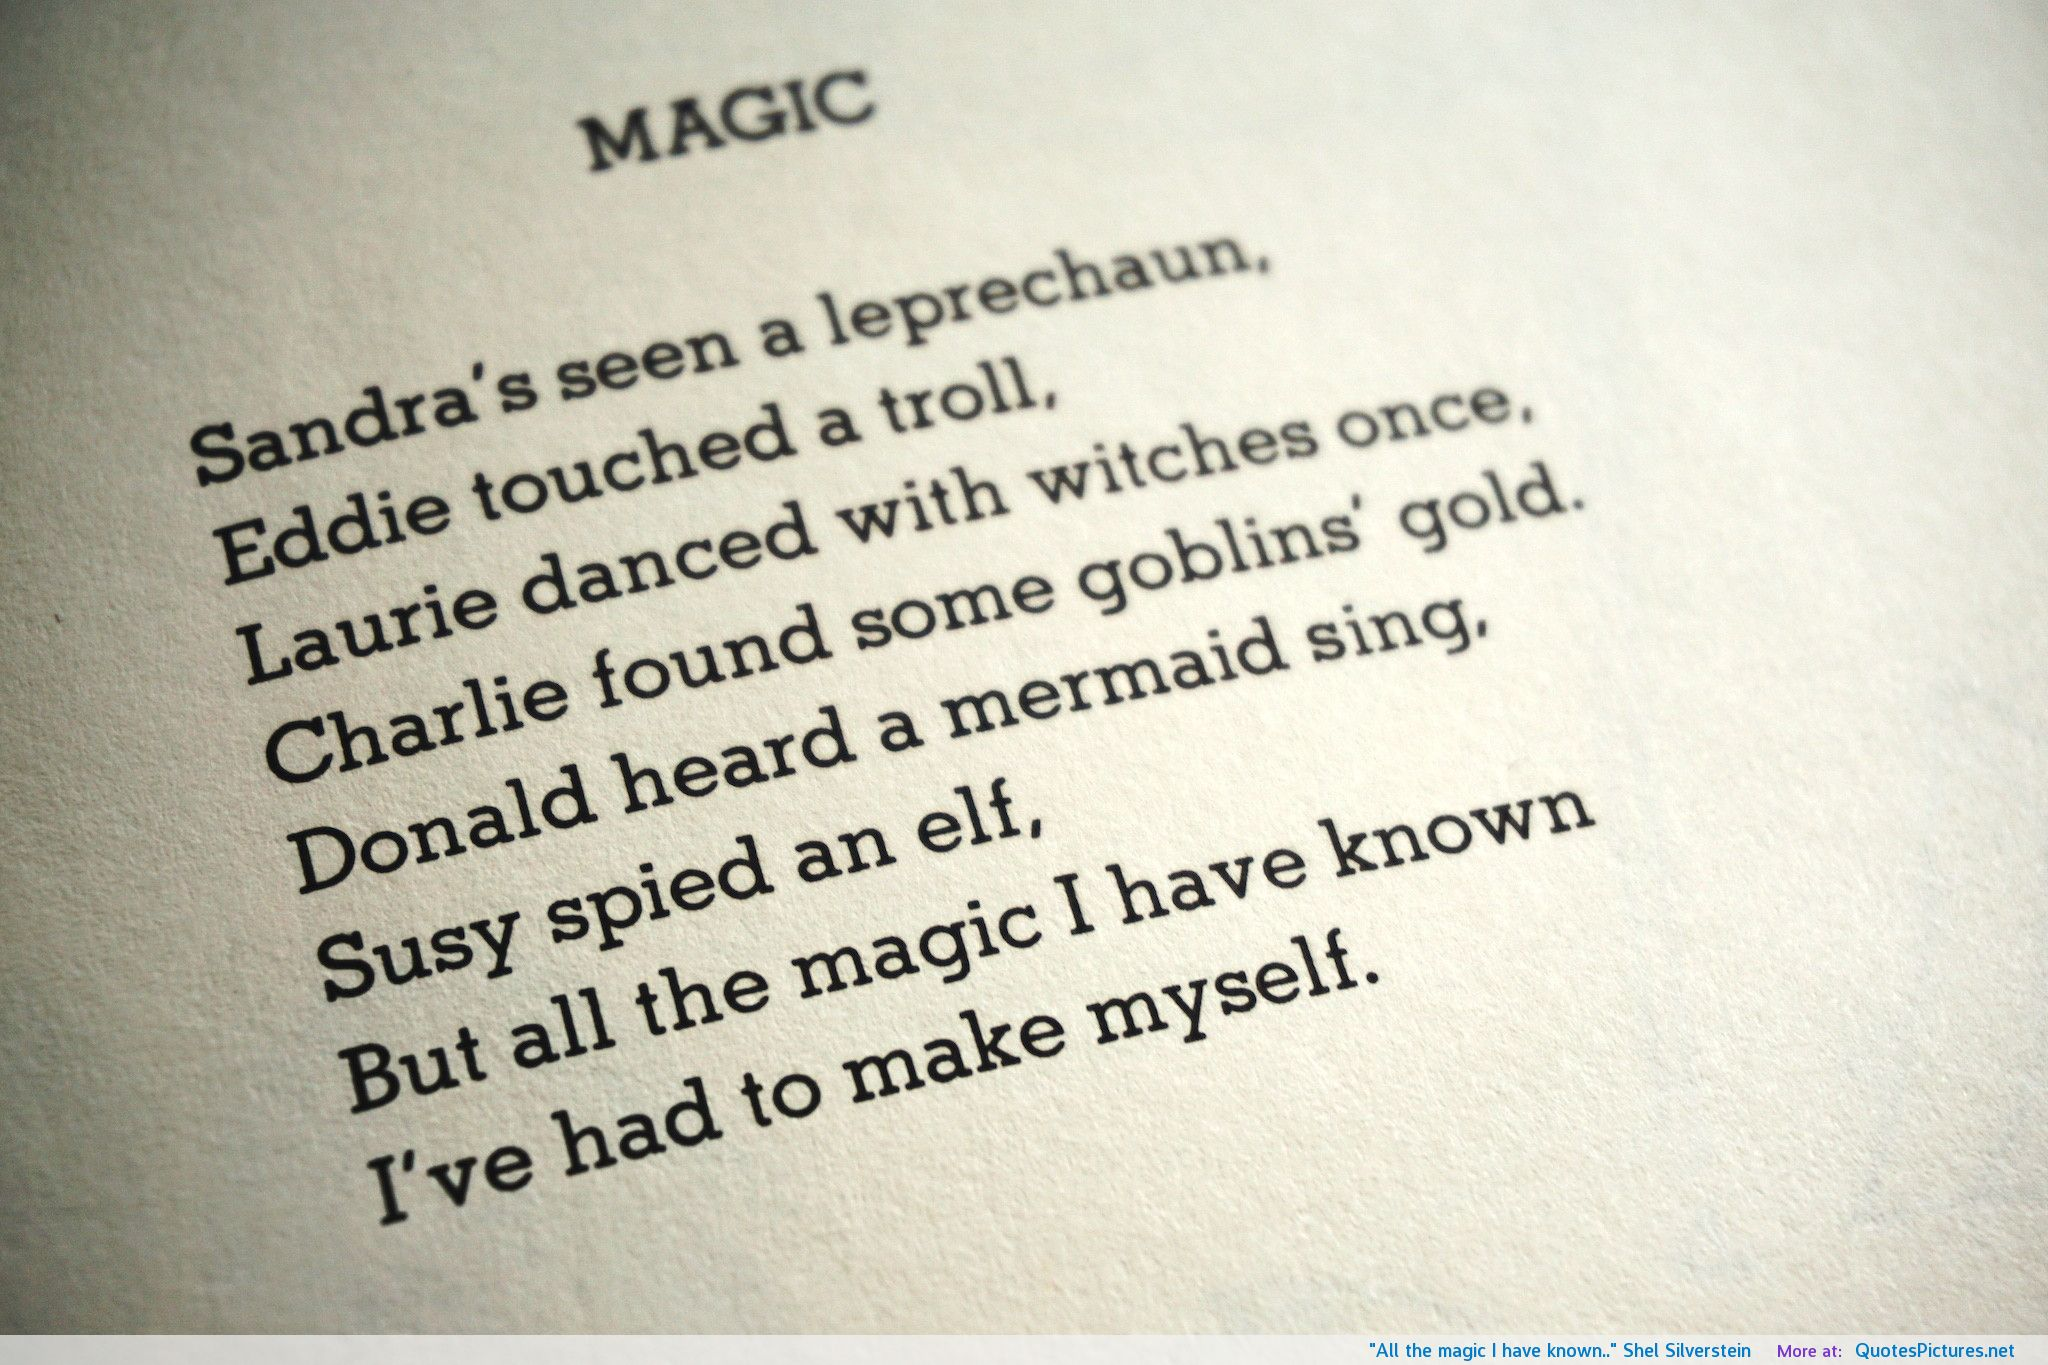 Shel Silverstein Quotes About Life: Shel Silverstein Quotes About Life. QuotesGram